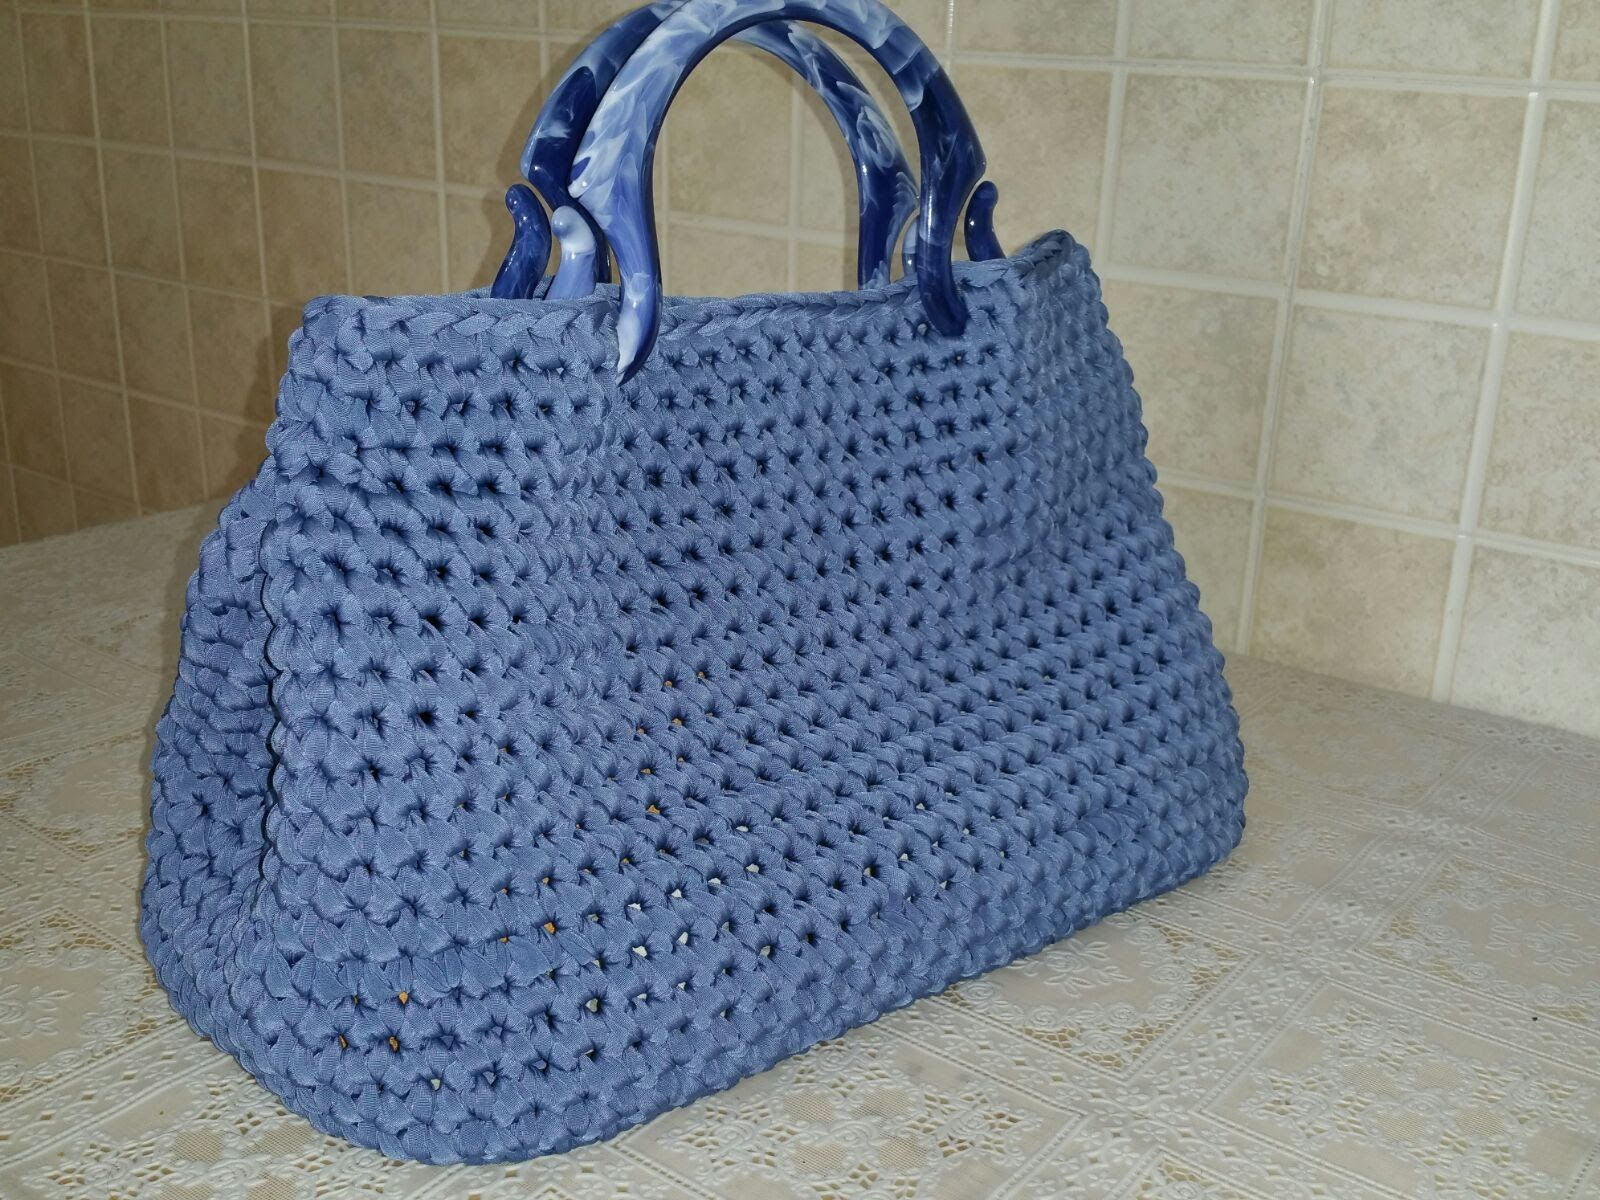 Borsa Marin 1a Parte τσάντες Pinterest Crocheted Bags